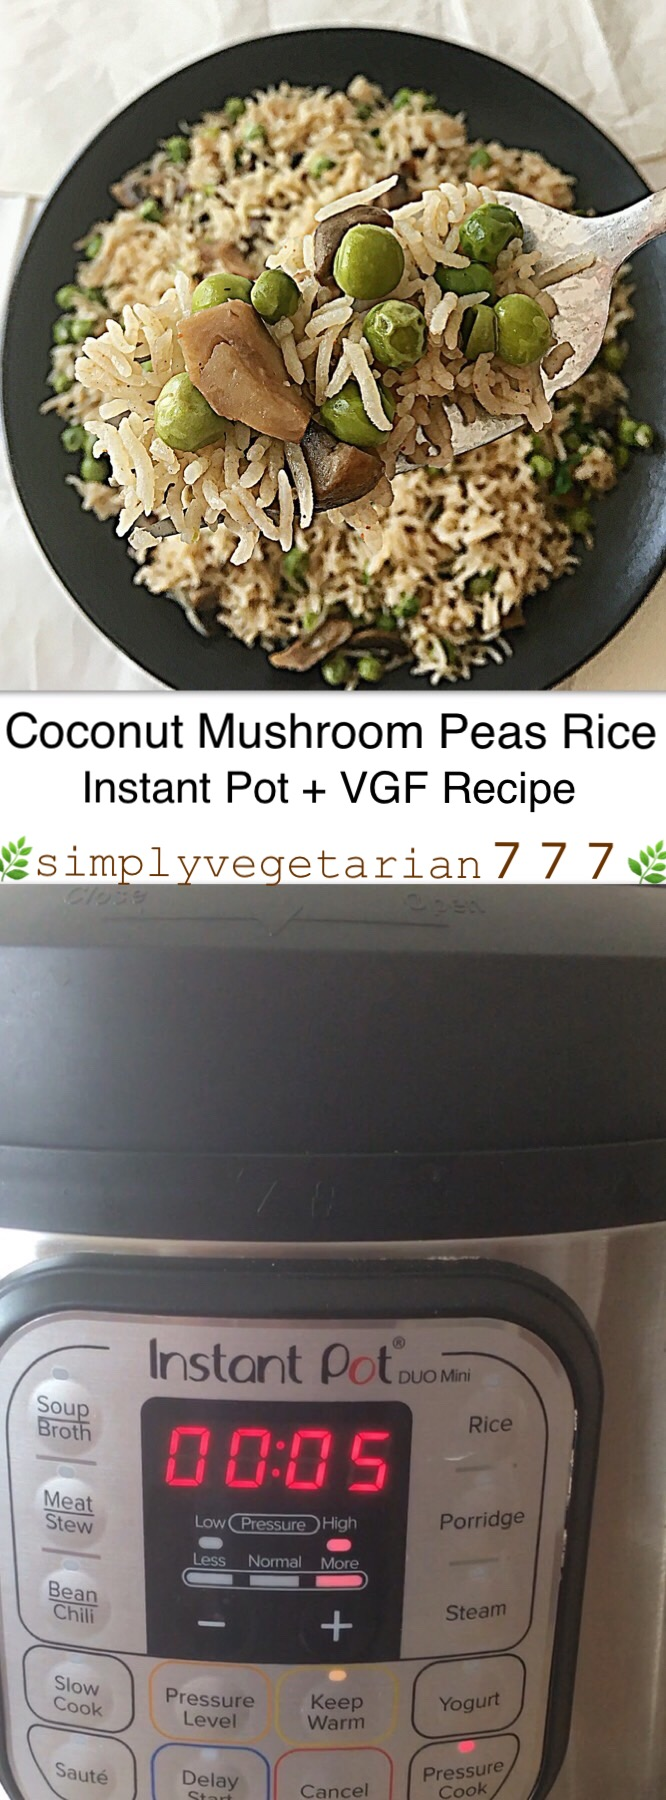 This Instant Pot Coconut Rice is cooked with only 5 main ingredients. It is a fail-proof recipe that is Easy, Efficient and Deliciously Vegetarian cooked in Instant Pot. The best part is that you can personalize it any way that you like. These taste best when served Hot. Coconut Curry Rice can be easily paired with korma, curry or savored as is. Stove Top and Pressure cooker instructions are also included in the description. A video snippet is included for the better understanding. #instantpotrice #coconutrice #coconutmilkrice #ricerecipes #coconutrecipes #instantpotveganrecipes #instantpotglutenfreerecipes #instantpoteasyrecipes #instantpotbeginnerrecipes